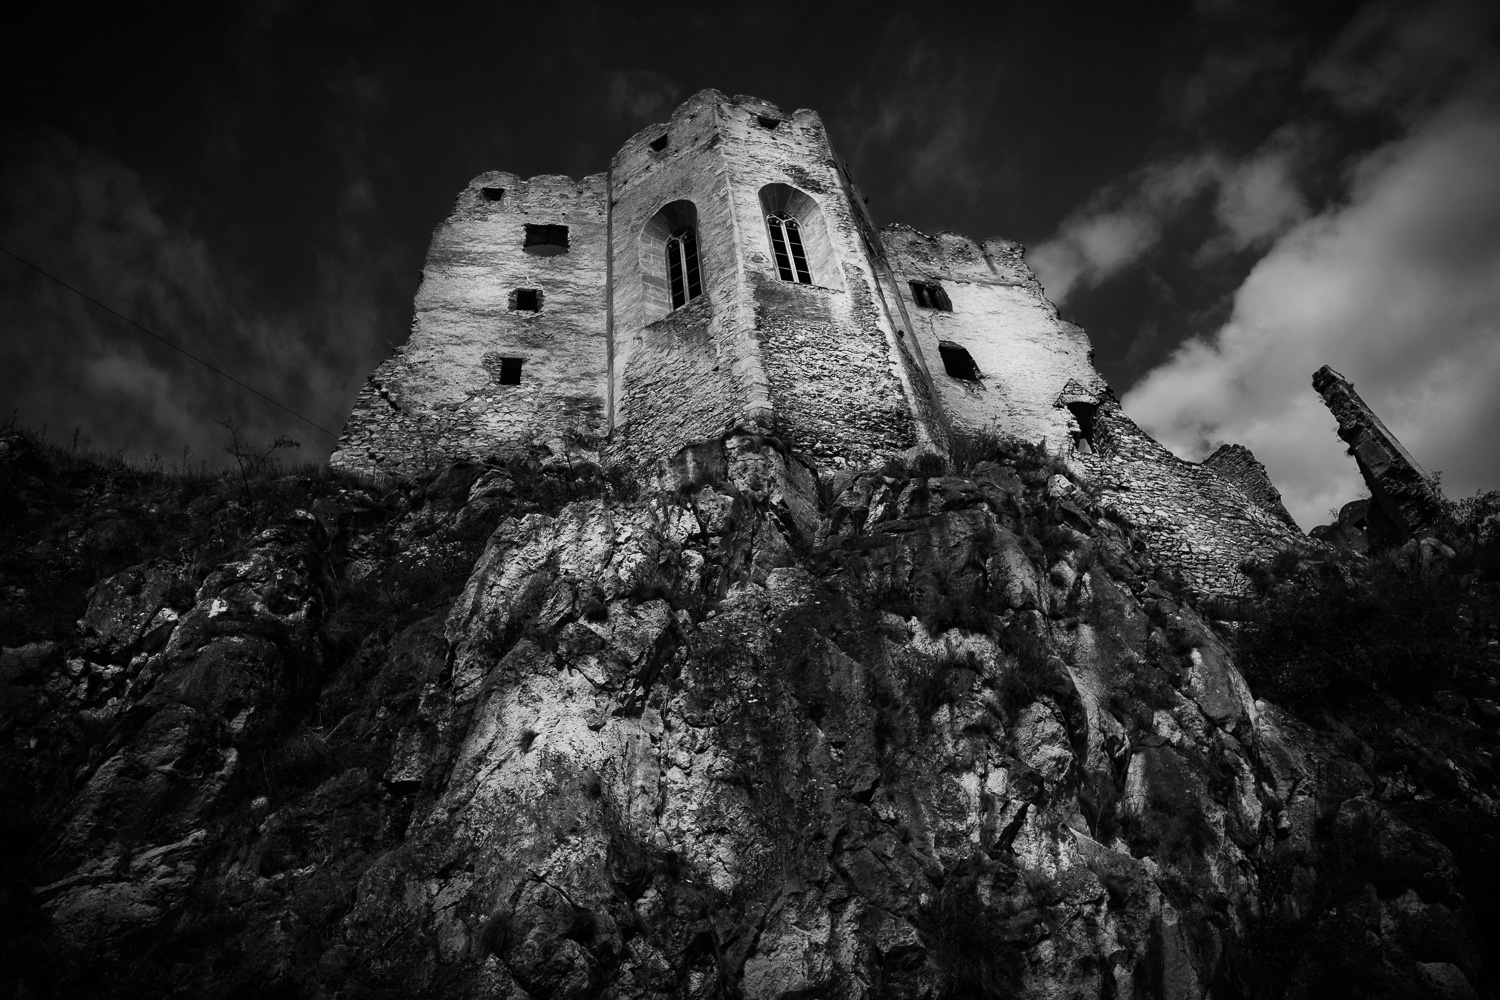 One of the towers inside Beckov Castle.I am sucker for a moody black&white photographs. Sometimes there is no other choice, only shoot the subject in the worst lighting conditions right in the middle of the day. More often than not, the results are less than satisfactory. BW conversion such as this can salvage the photograph create a reasonably useful image,